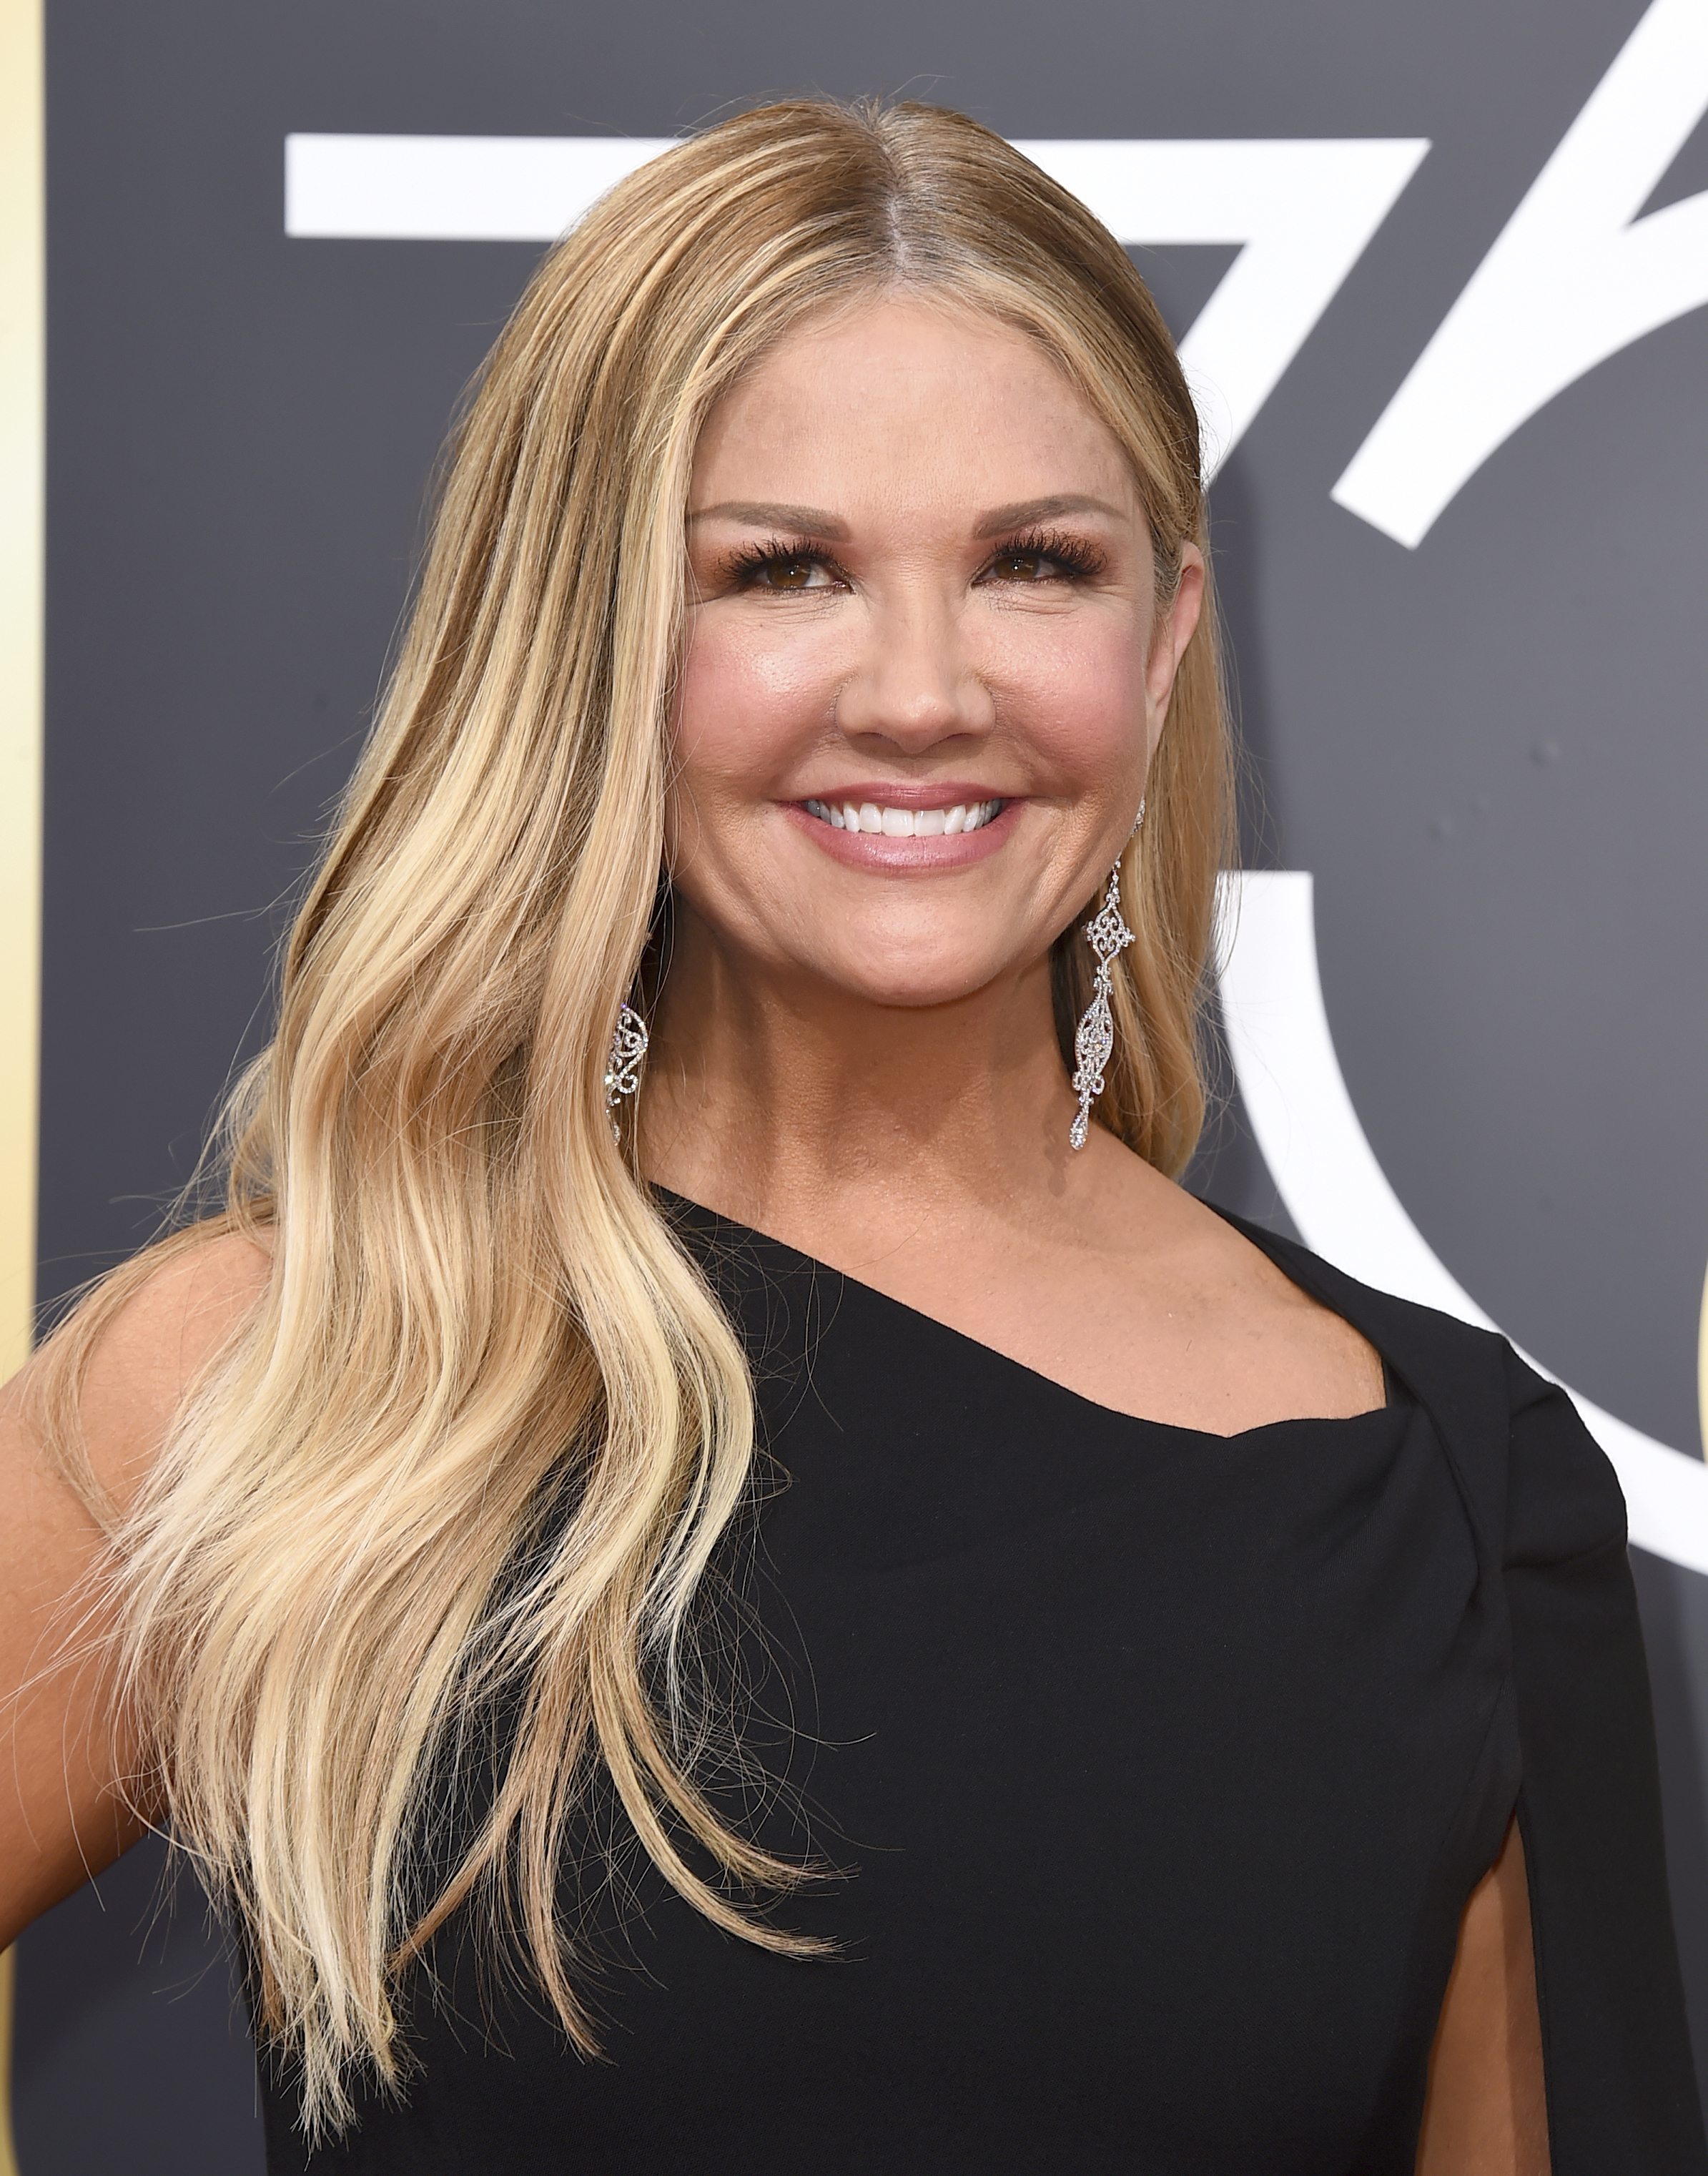 <div class='meta'><div class='origin-logo' data-origin='AP'></div><span class='caption-text' data-credit='Jordan Strauss/Invision/AP'>Nancy O'Dell arrives at the 75th annual Golden Globe Awards at the Beverly Hilton Hotel on Sunday, Jan. 7, 2018, in Beverly Hills, Calif.</span></div>